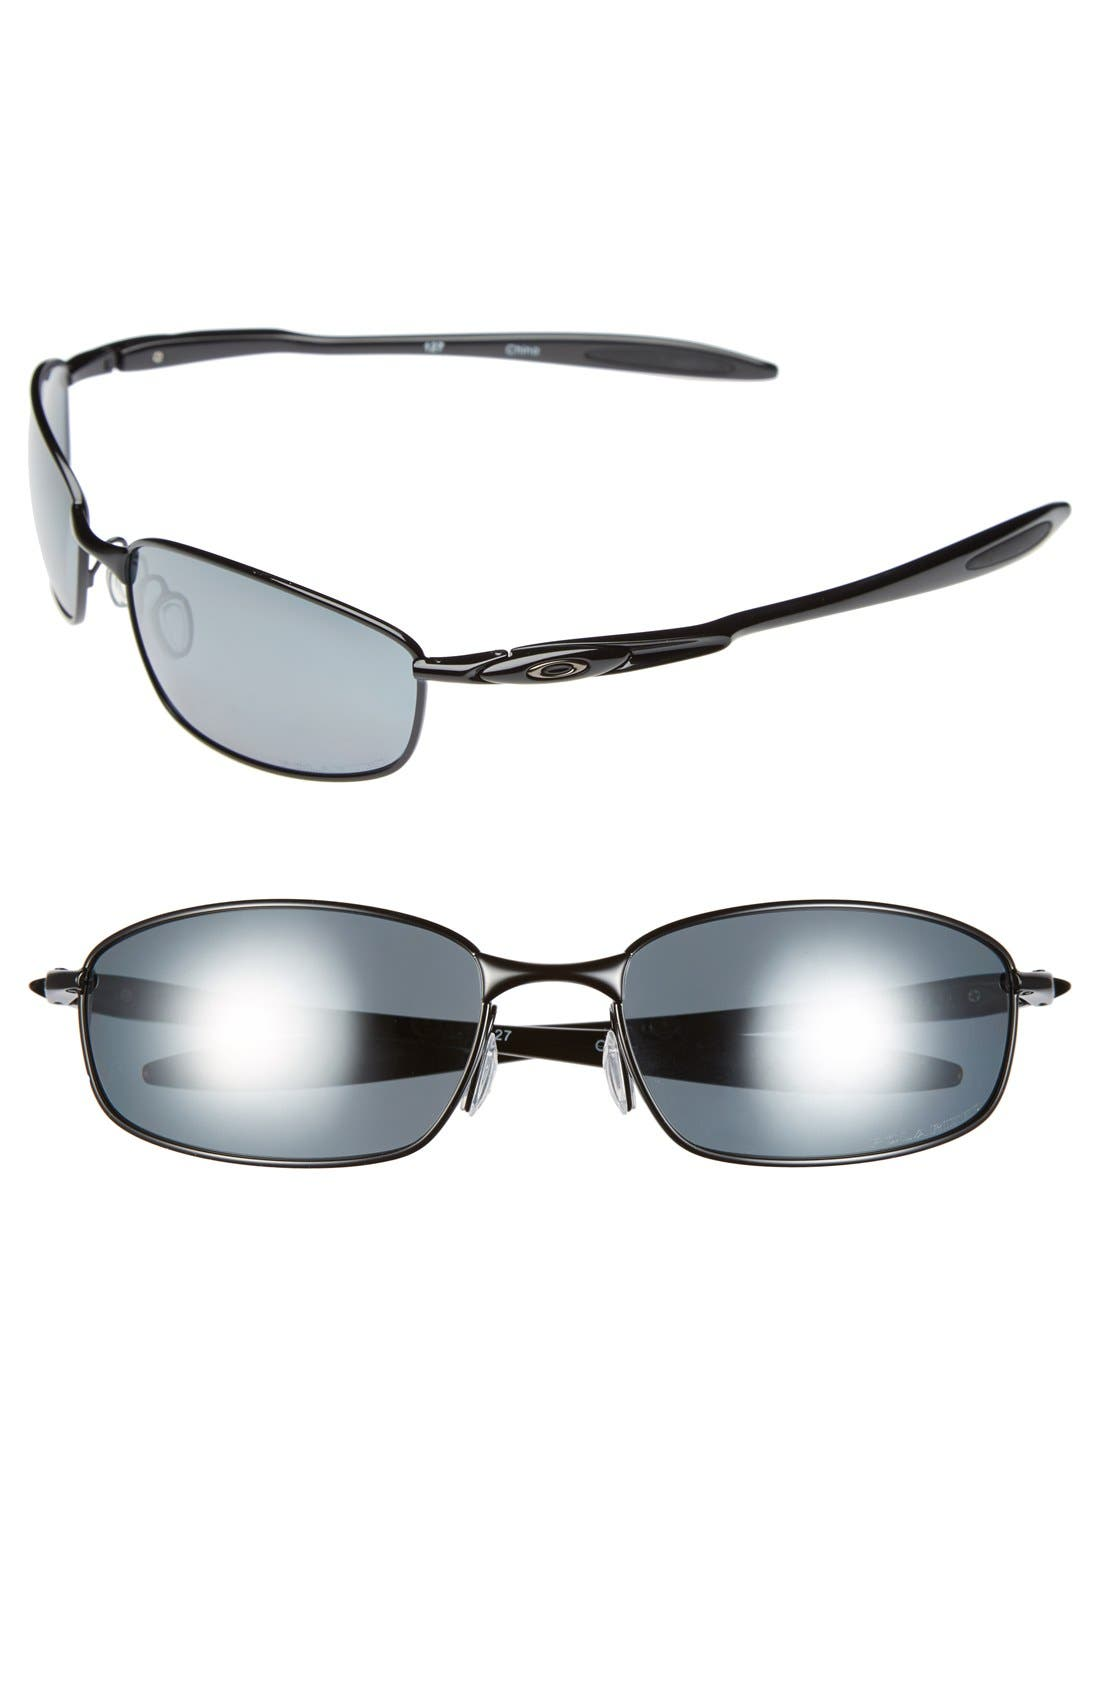 Alternate Image 1 Selected - Oakley 'Blender' 59mm Polarized Sunglasses